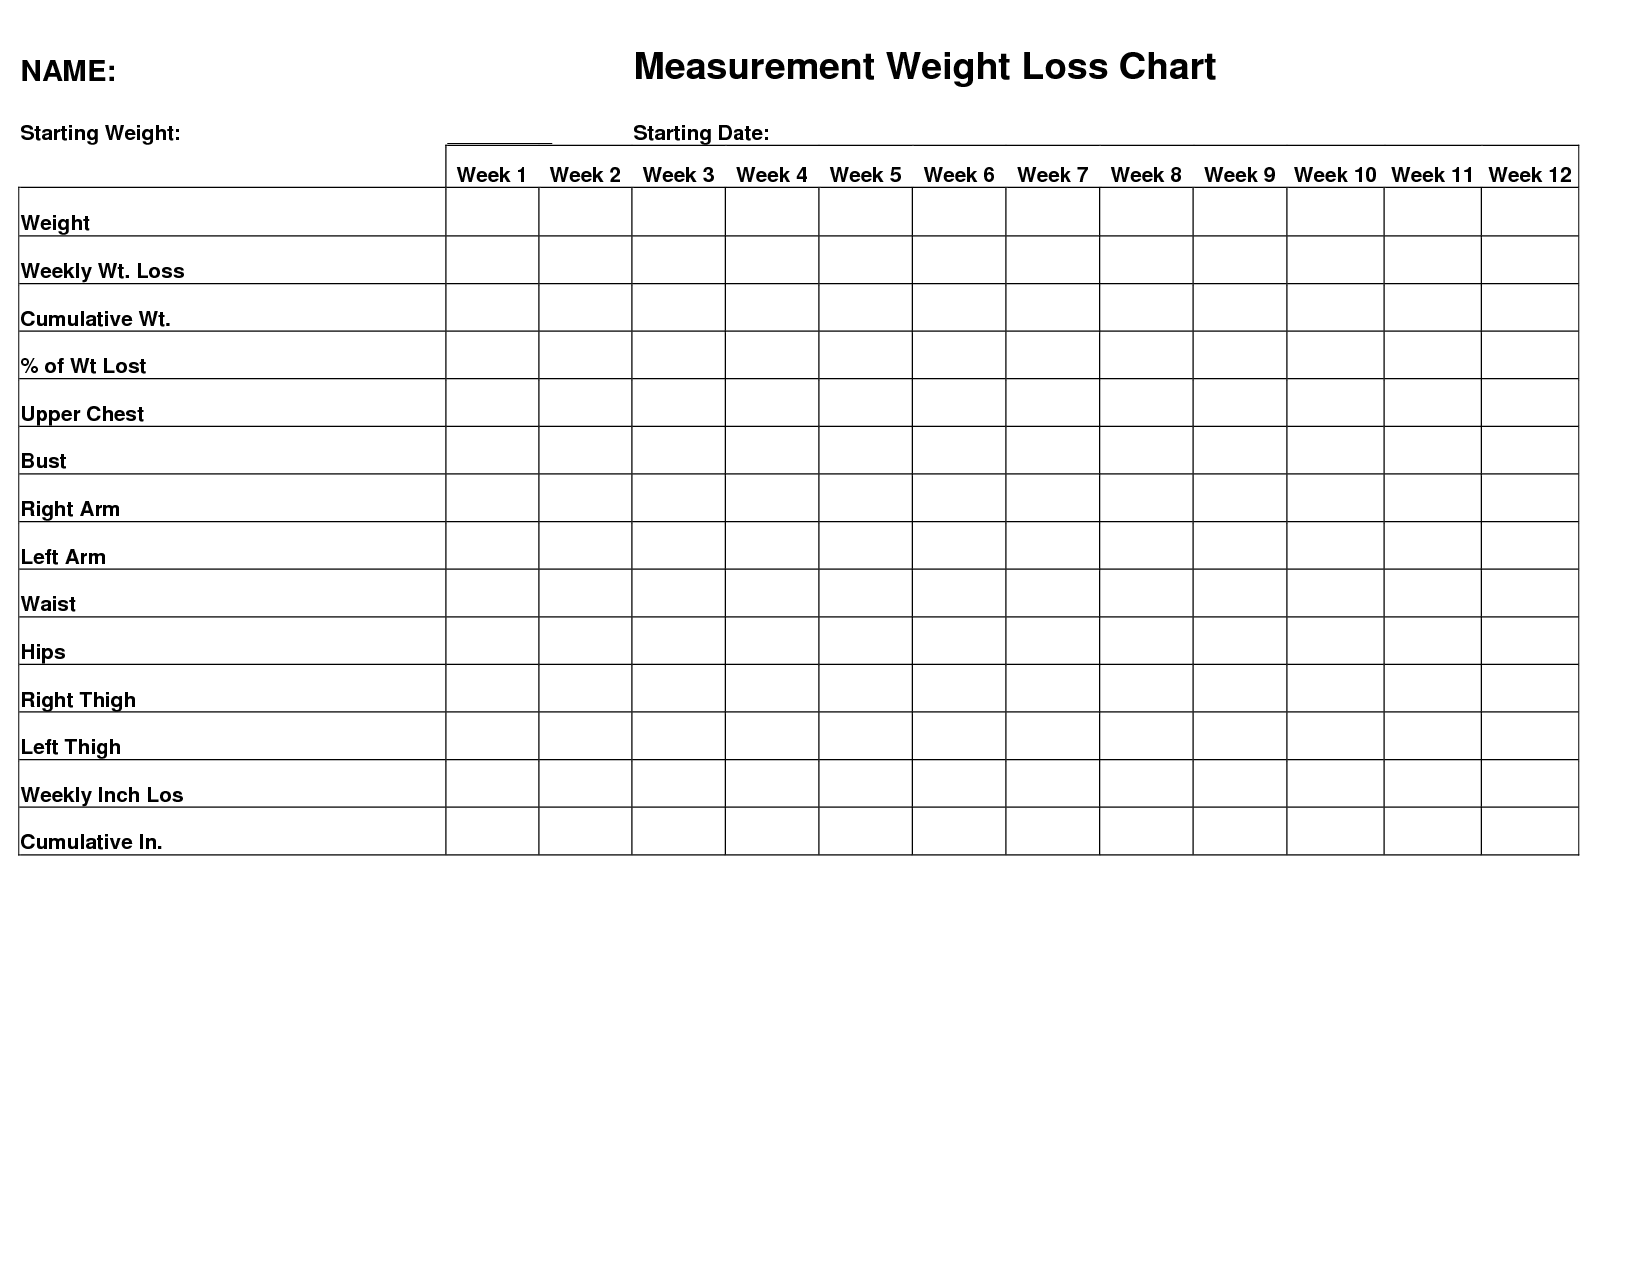 Female Weight Measurement Body Silhouette Outline